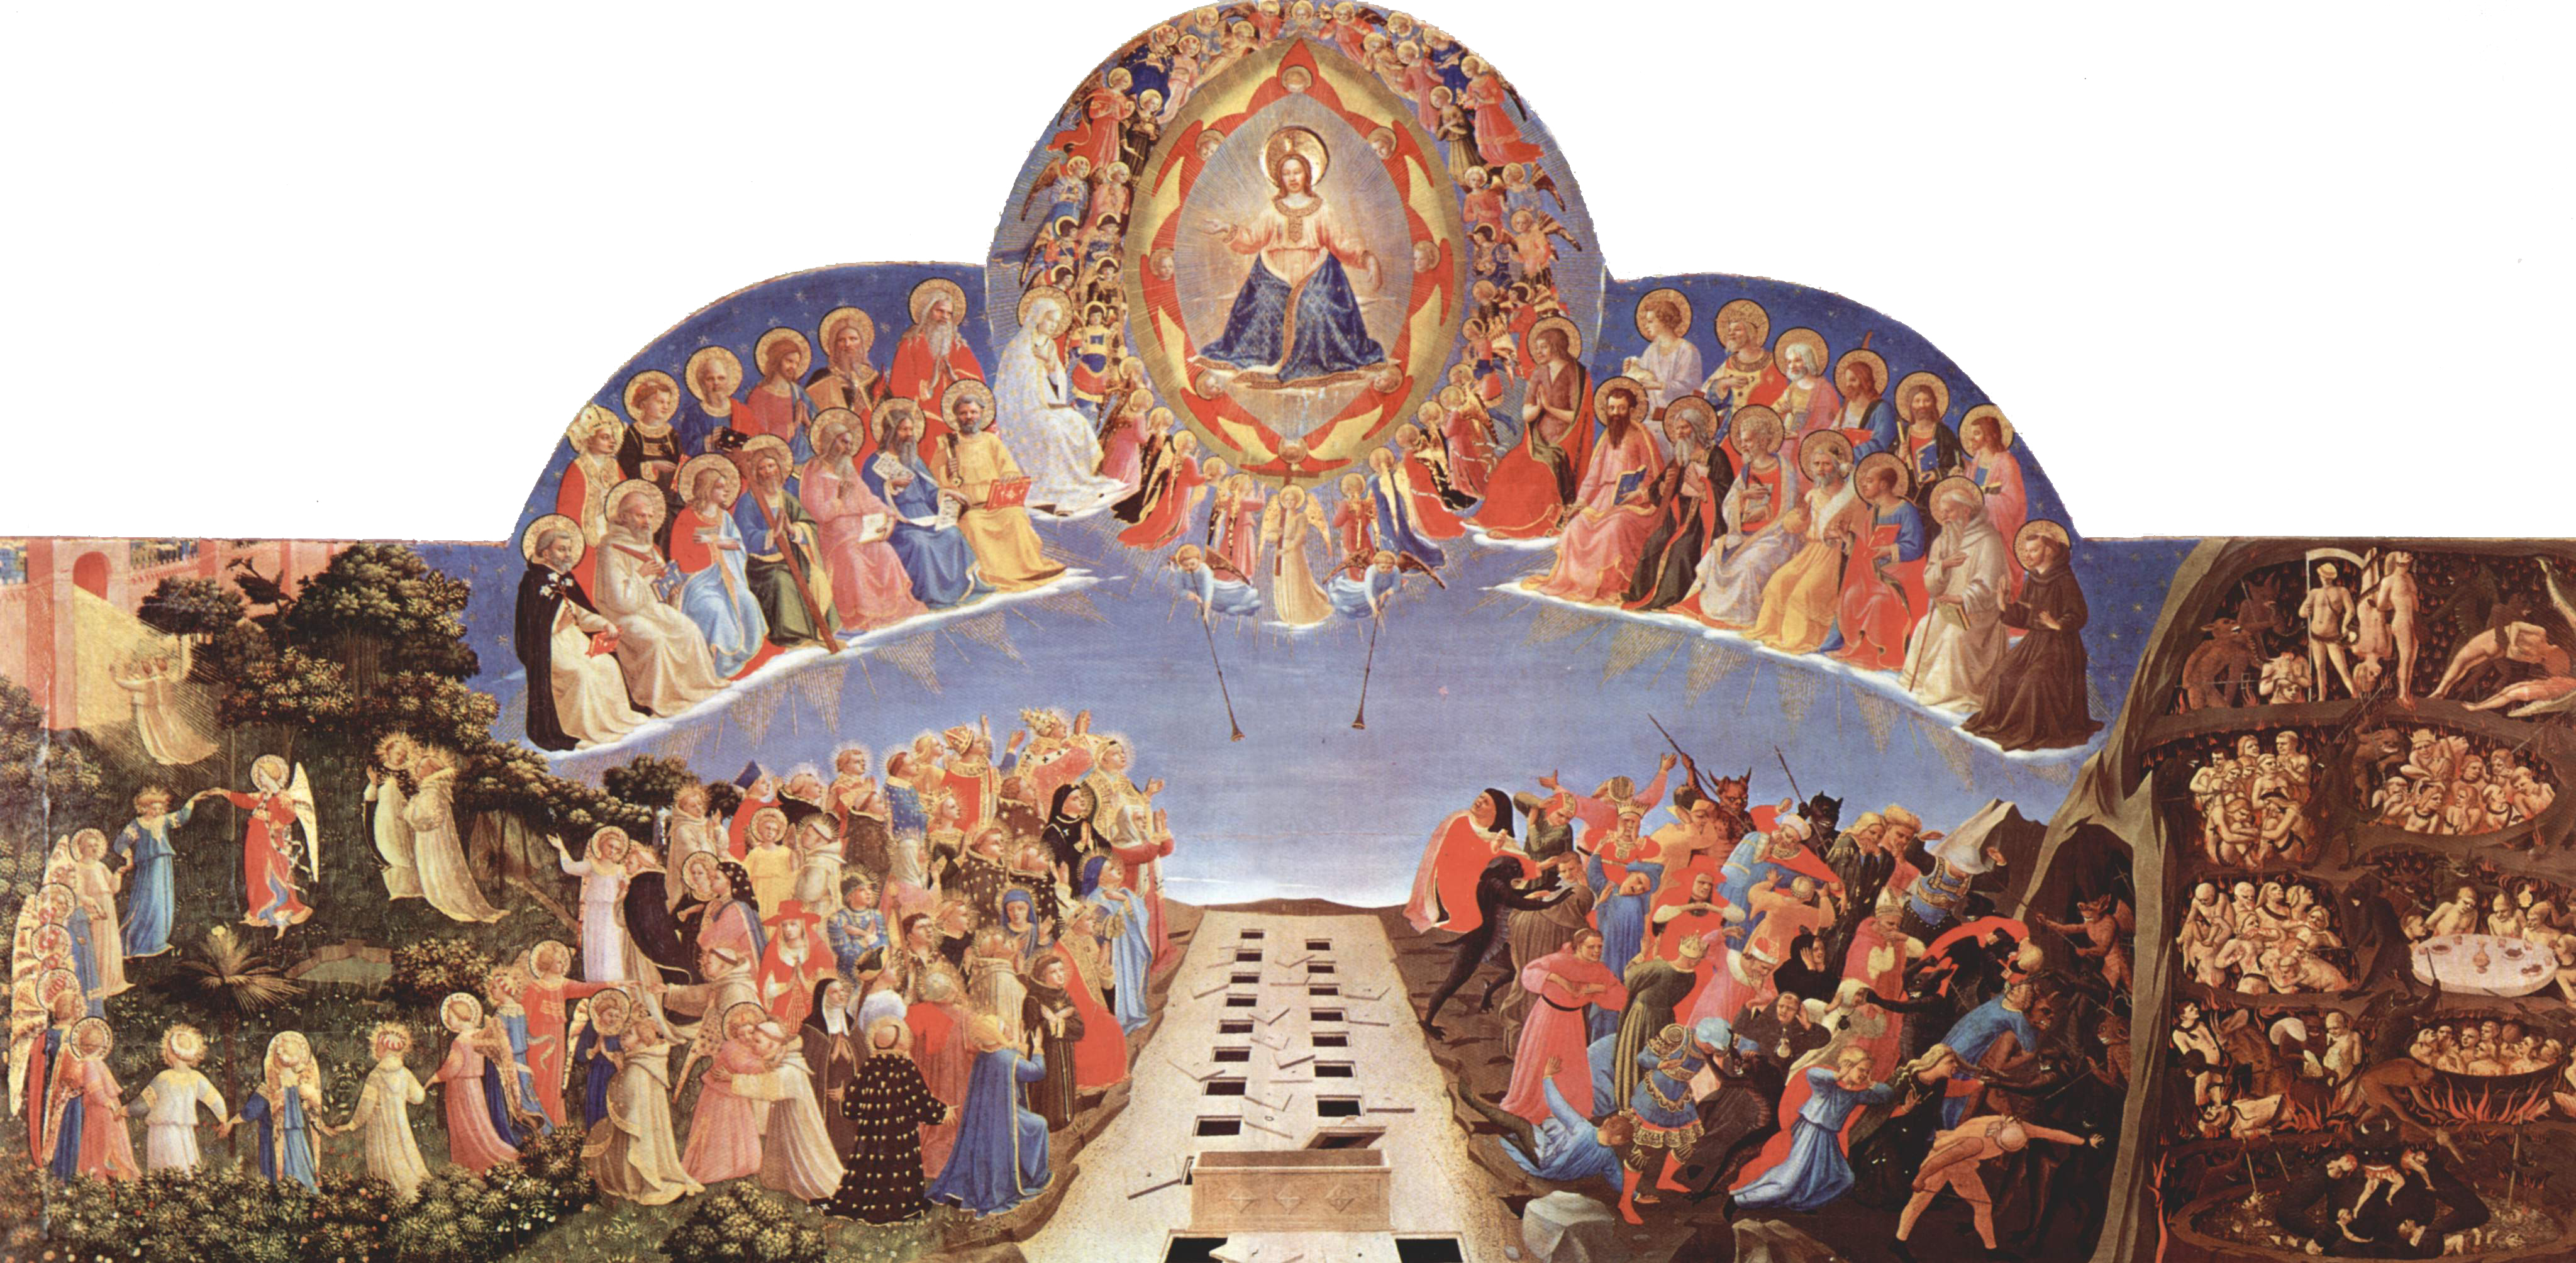 Fra Angelico, The Last Judgment